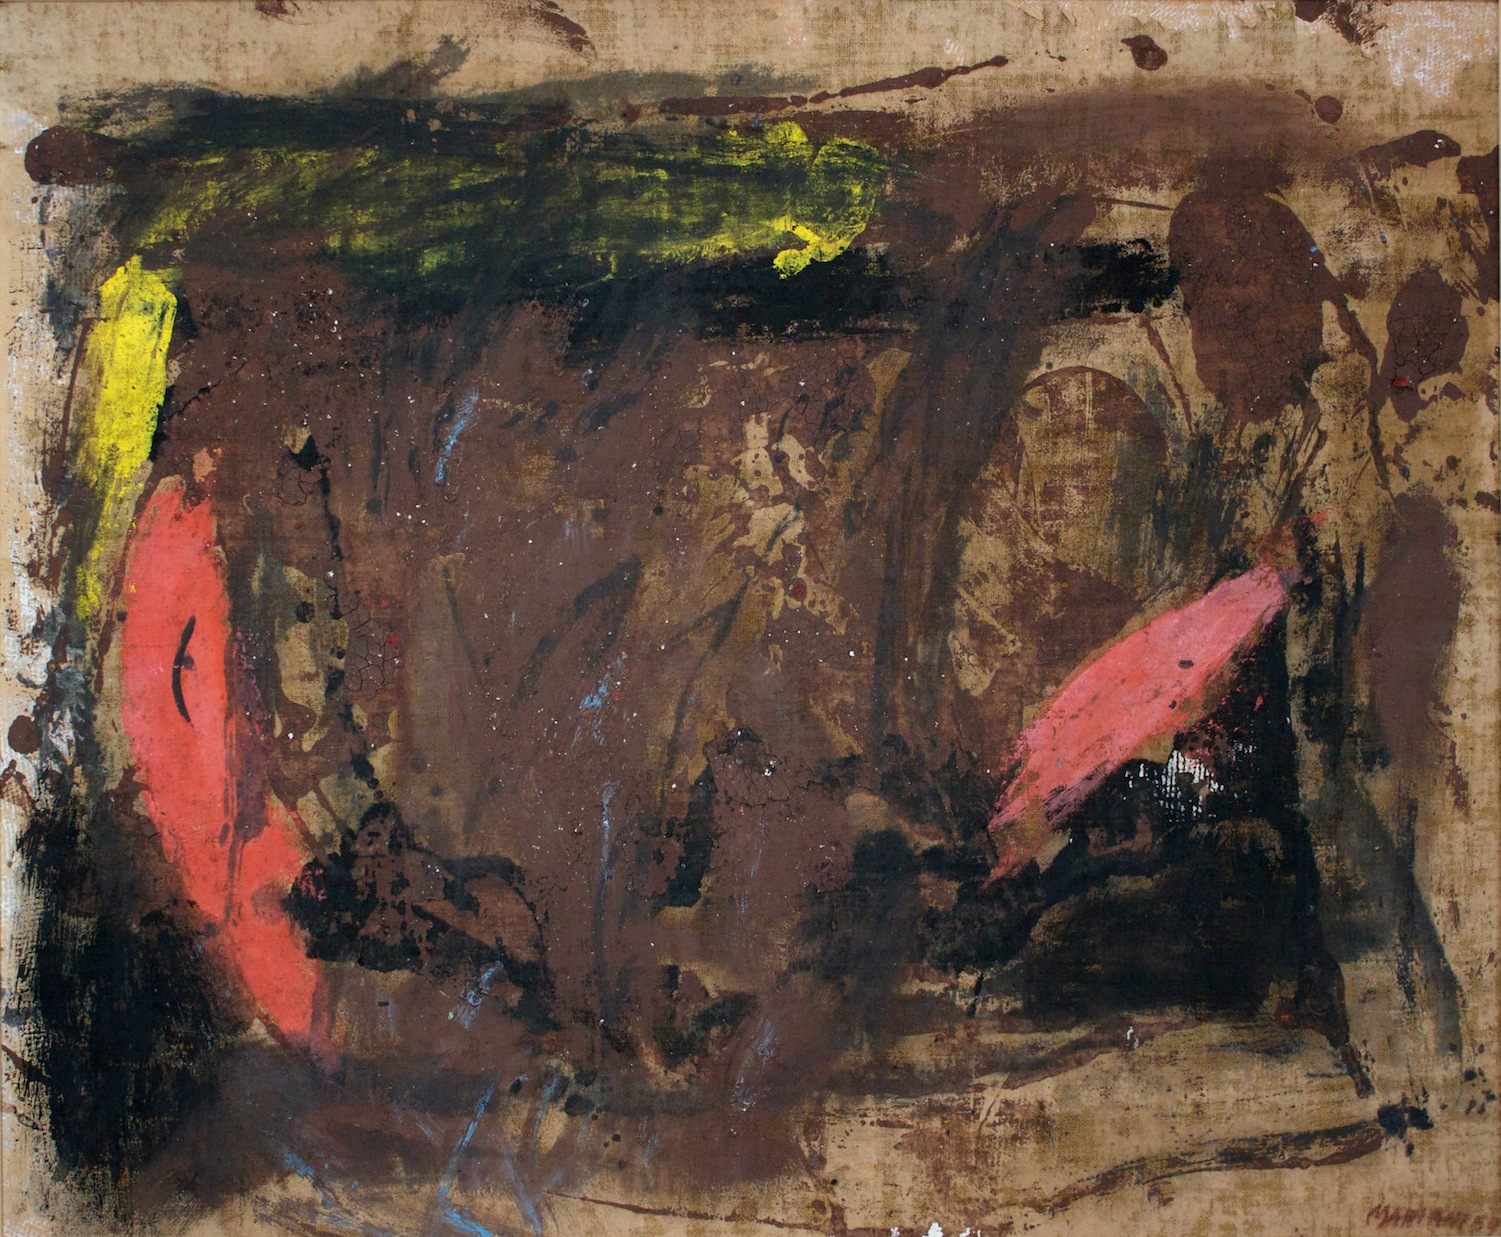 Marcello Mariani - Senza Titolo - Oil and mixed media on canvas - 1959